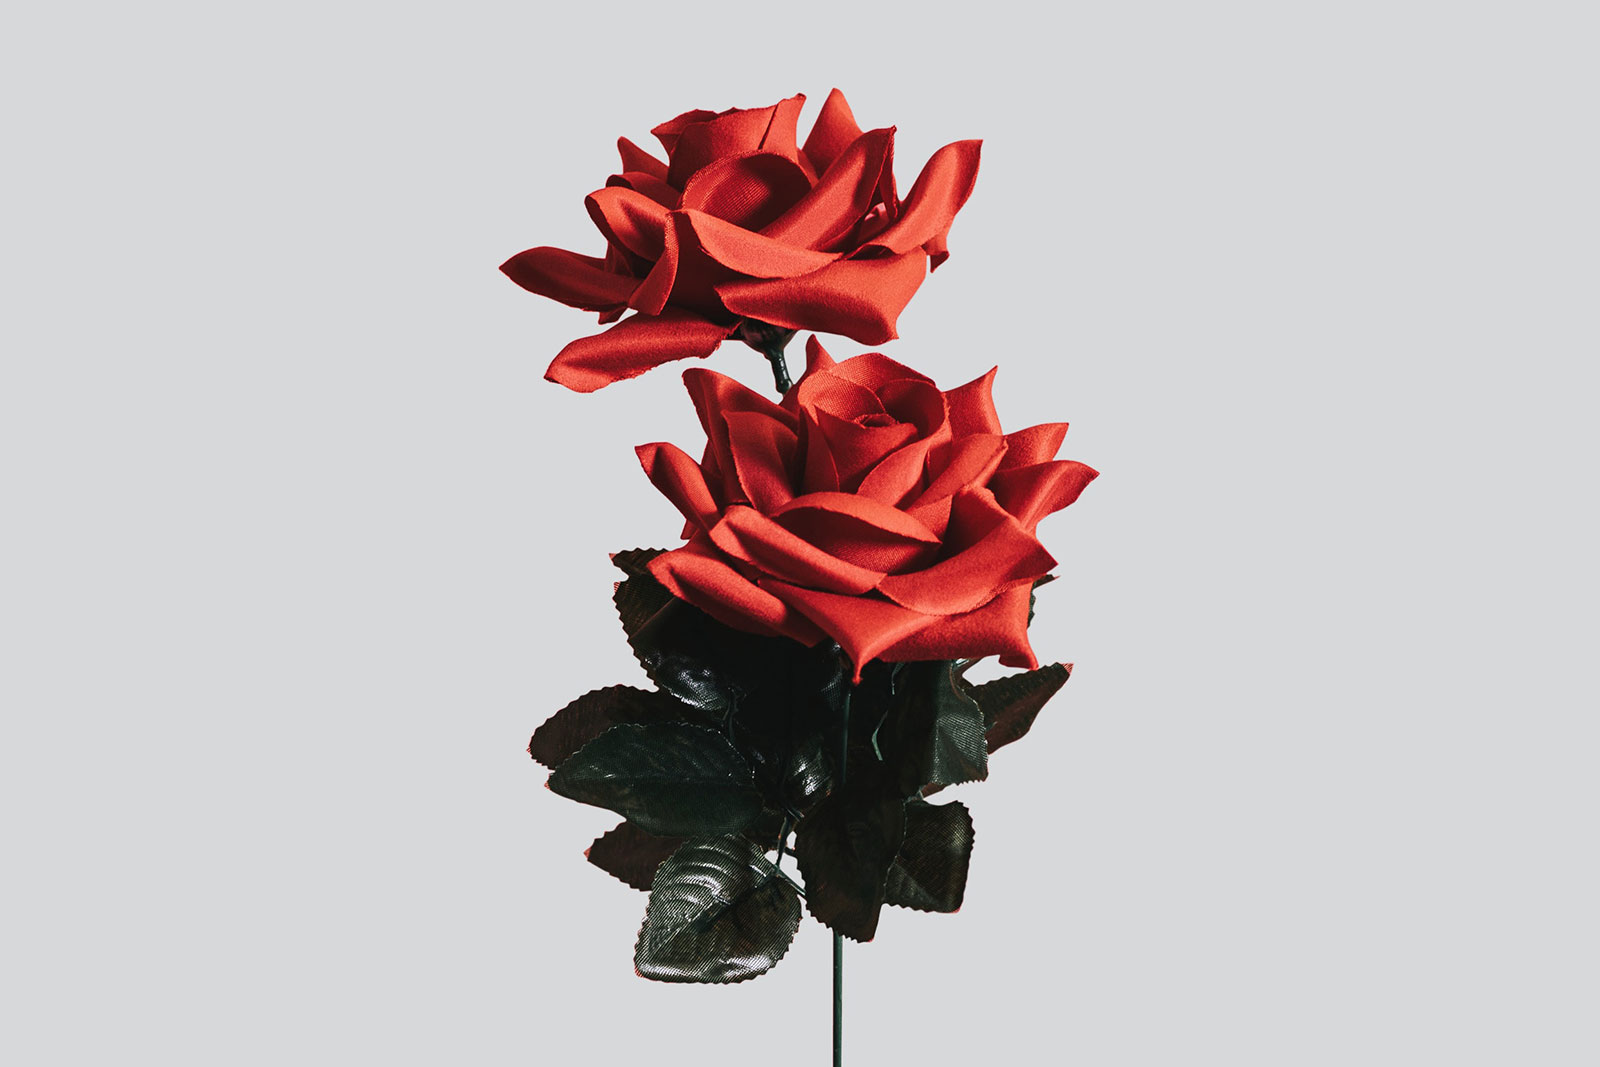 red rose valentines day ideas for girlfriend